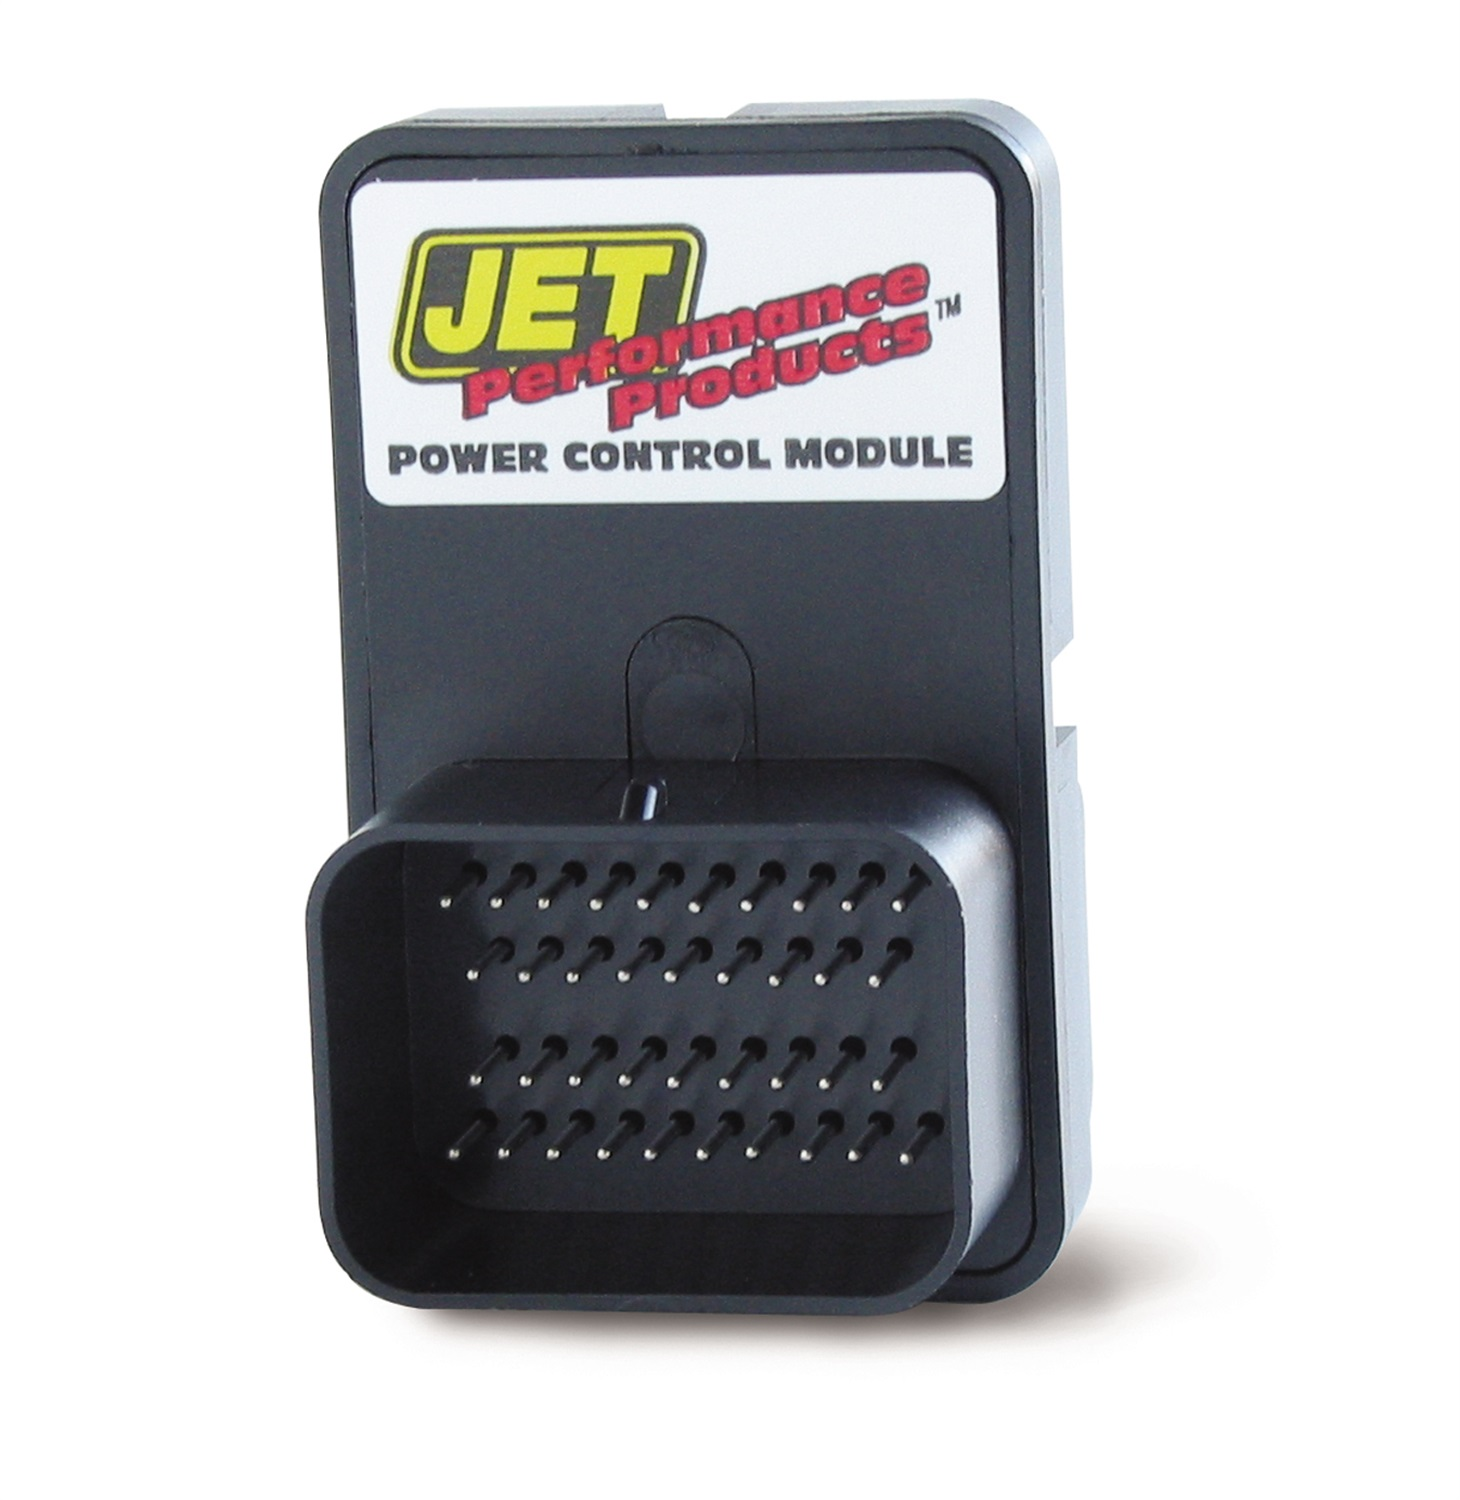 Jet Performance 90907 Plug In For Power Jet Performance Module Stage 1